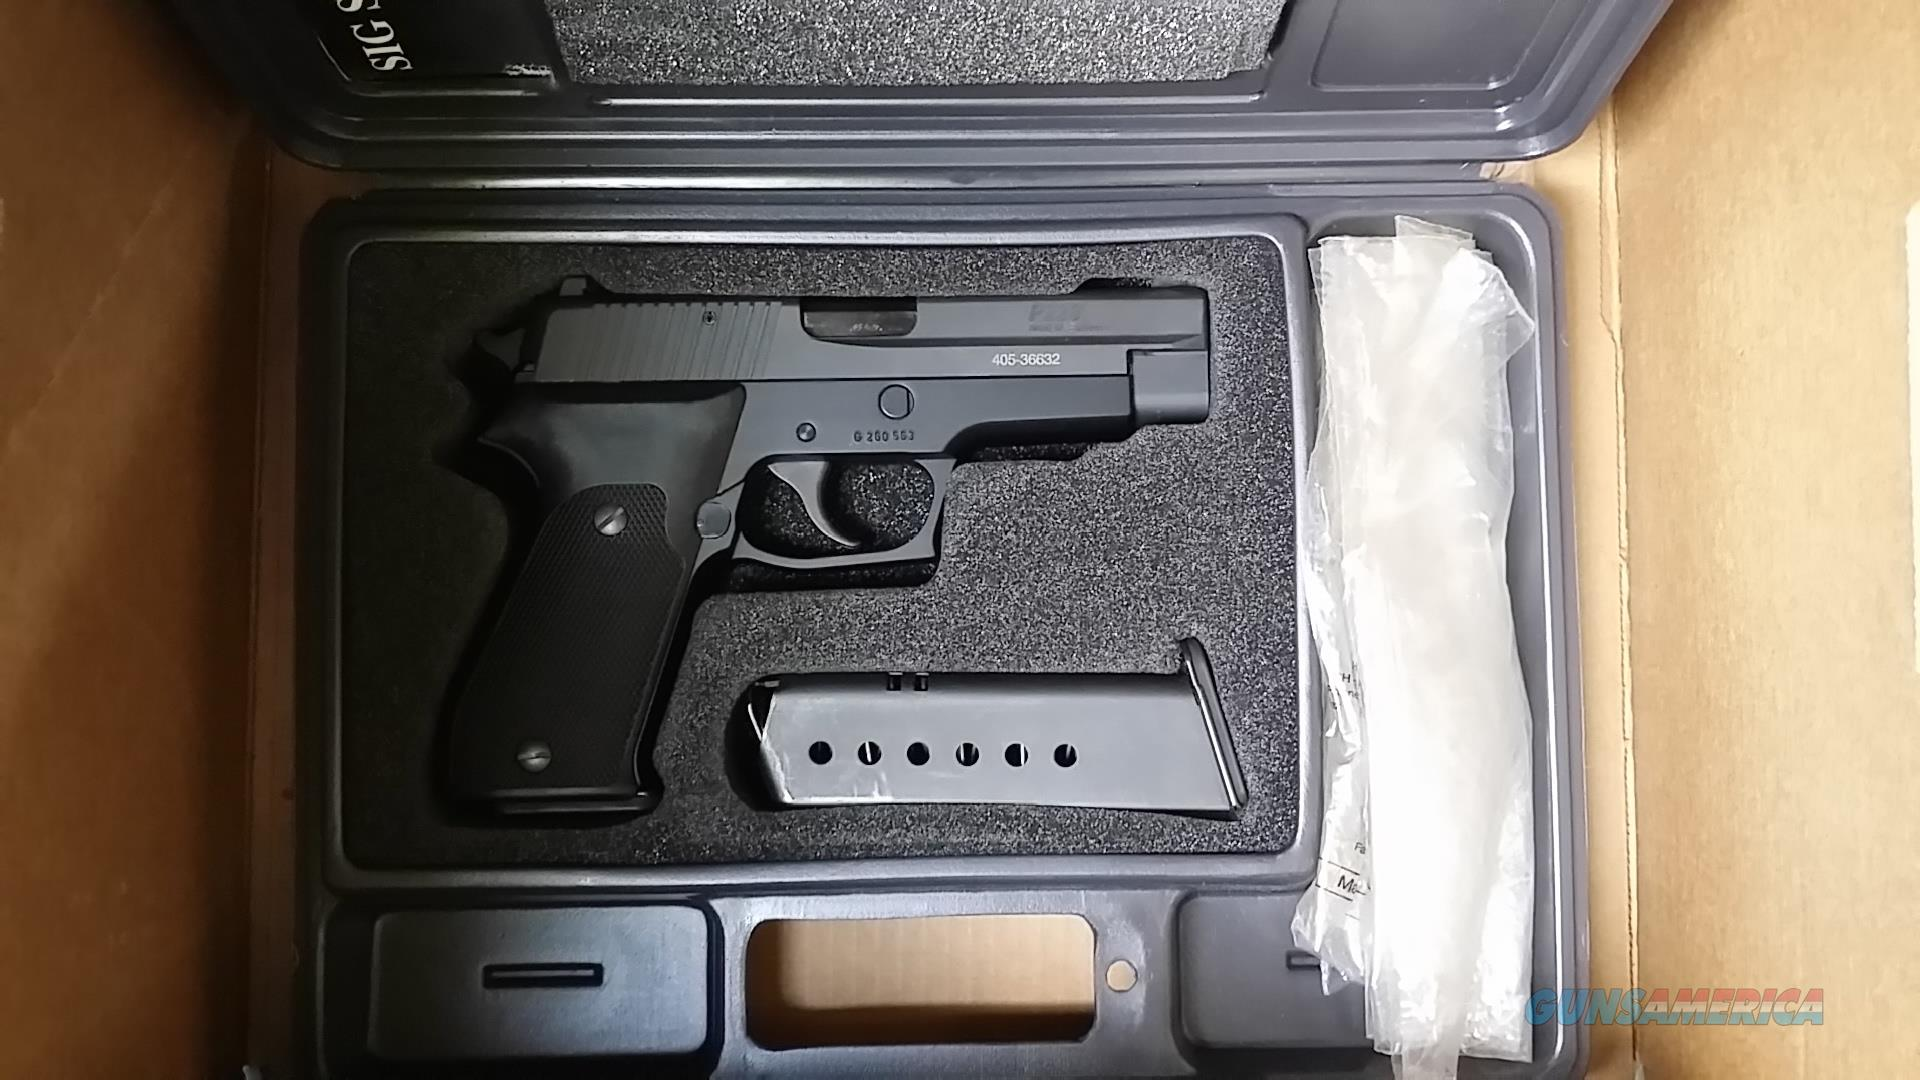 SIG SAUER German P220 45ACP Texas Department of Public Safety Issue  Guns > Pistols > Sig - Sauer/Sigarms Pistols > P220